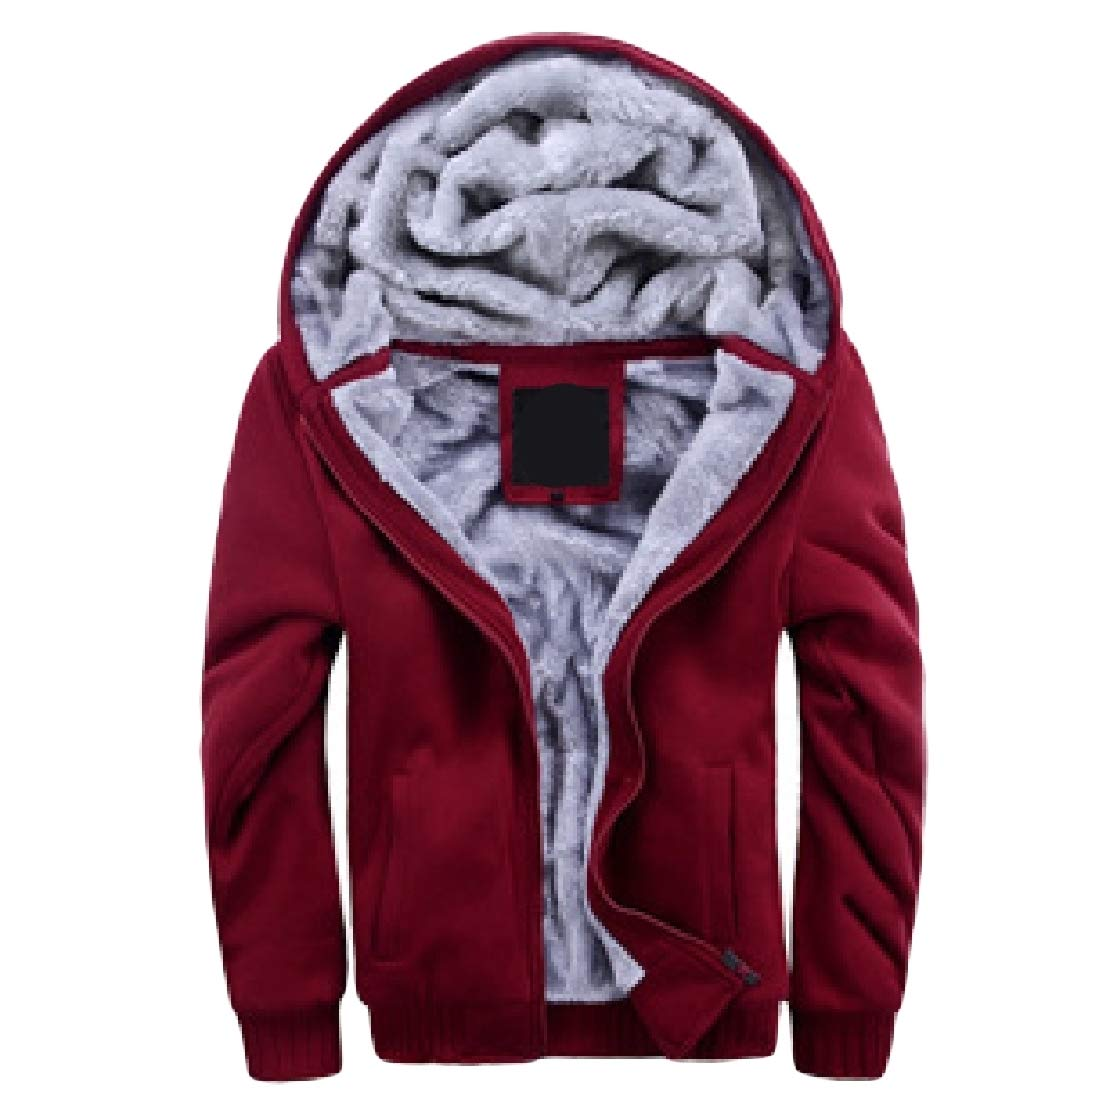 YUNY Mens Plus Size Pockets Velvet Hooded Zip Casual Pullover Sweatshirt Red M